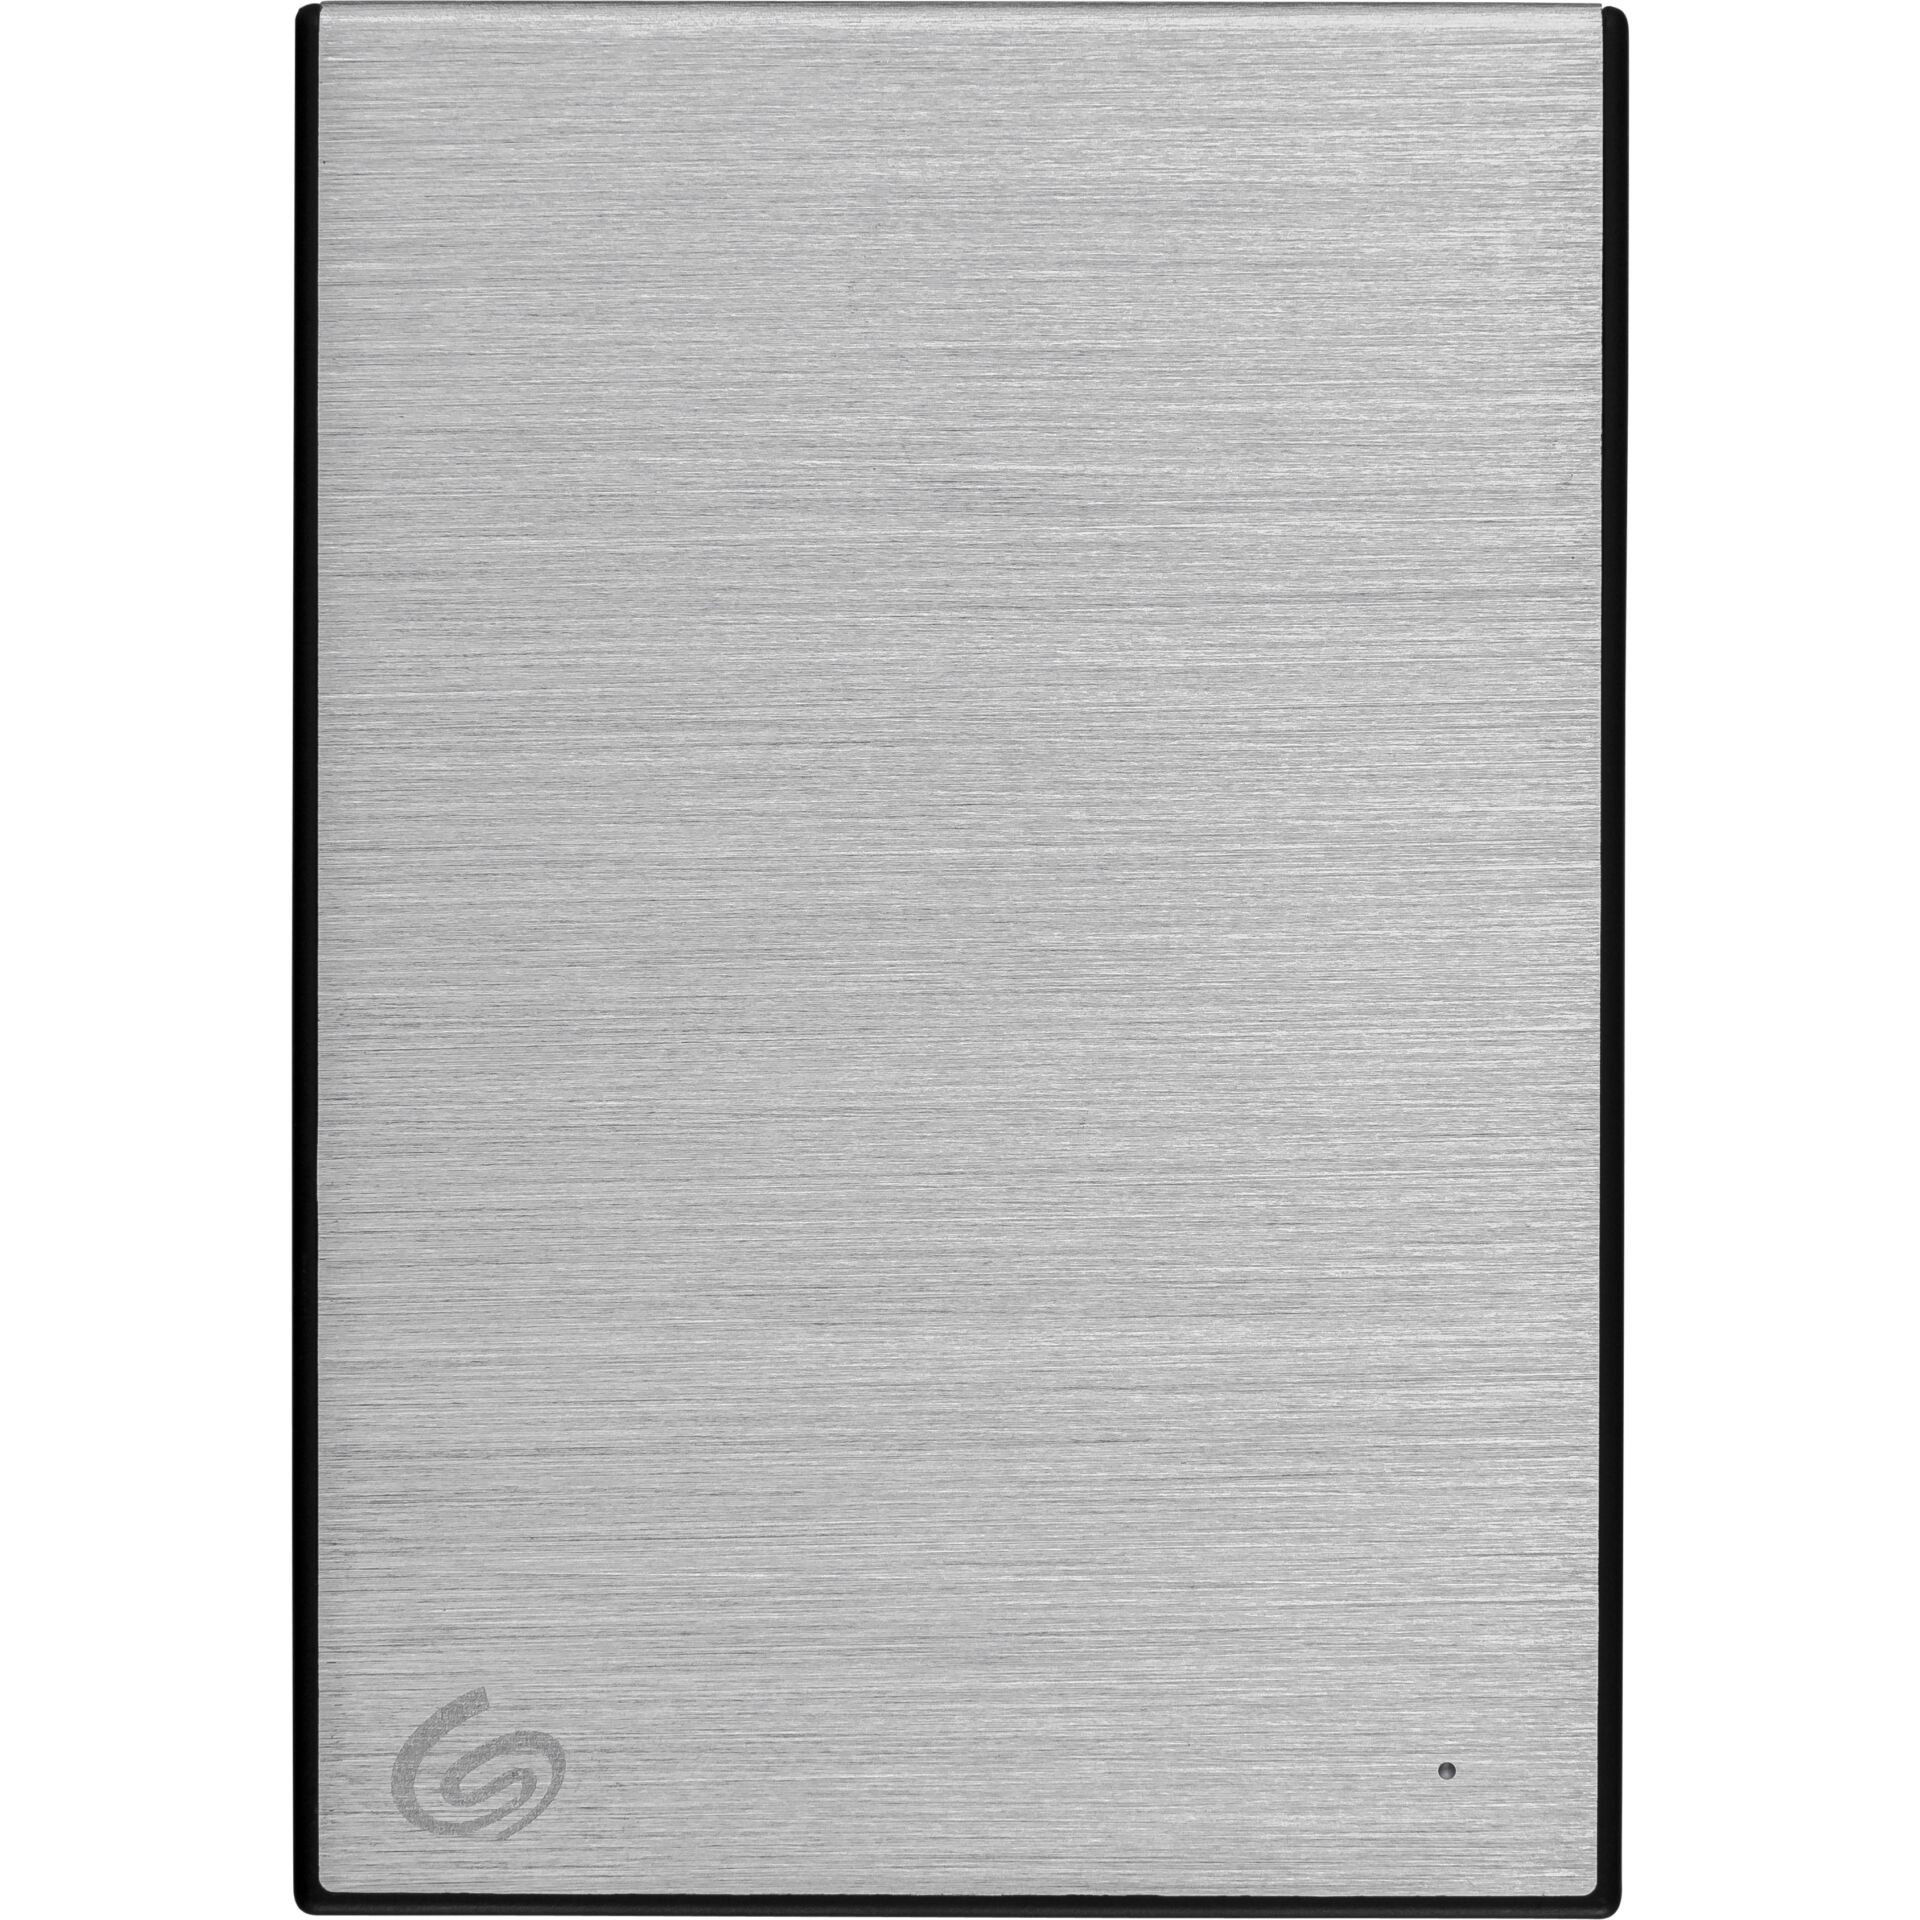 Seagate One Touch portable 4TB Silver USB 3.0